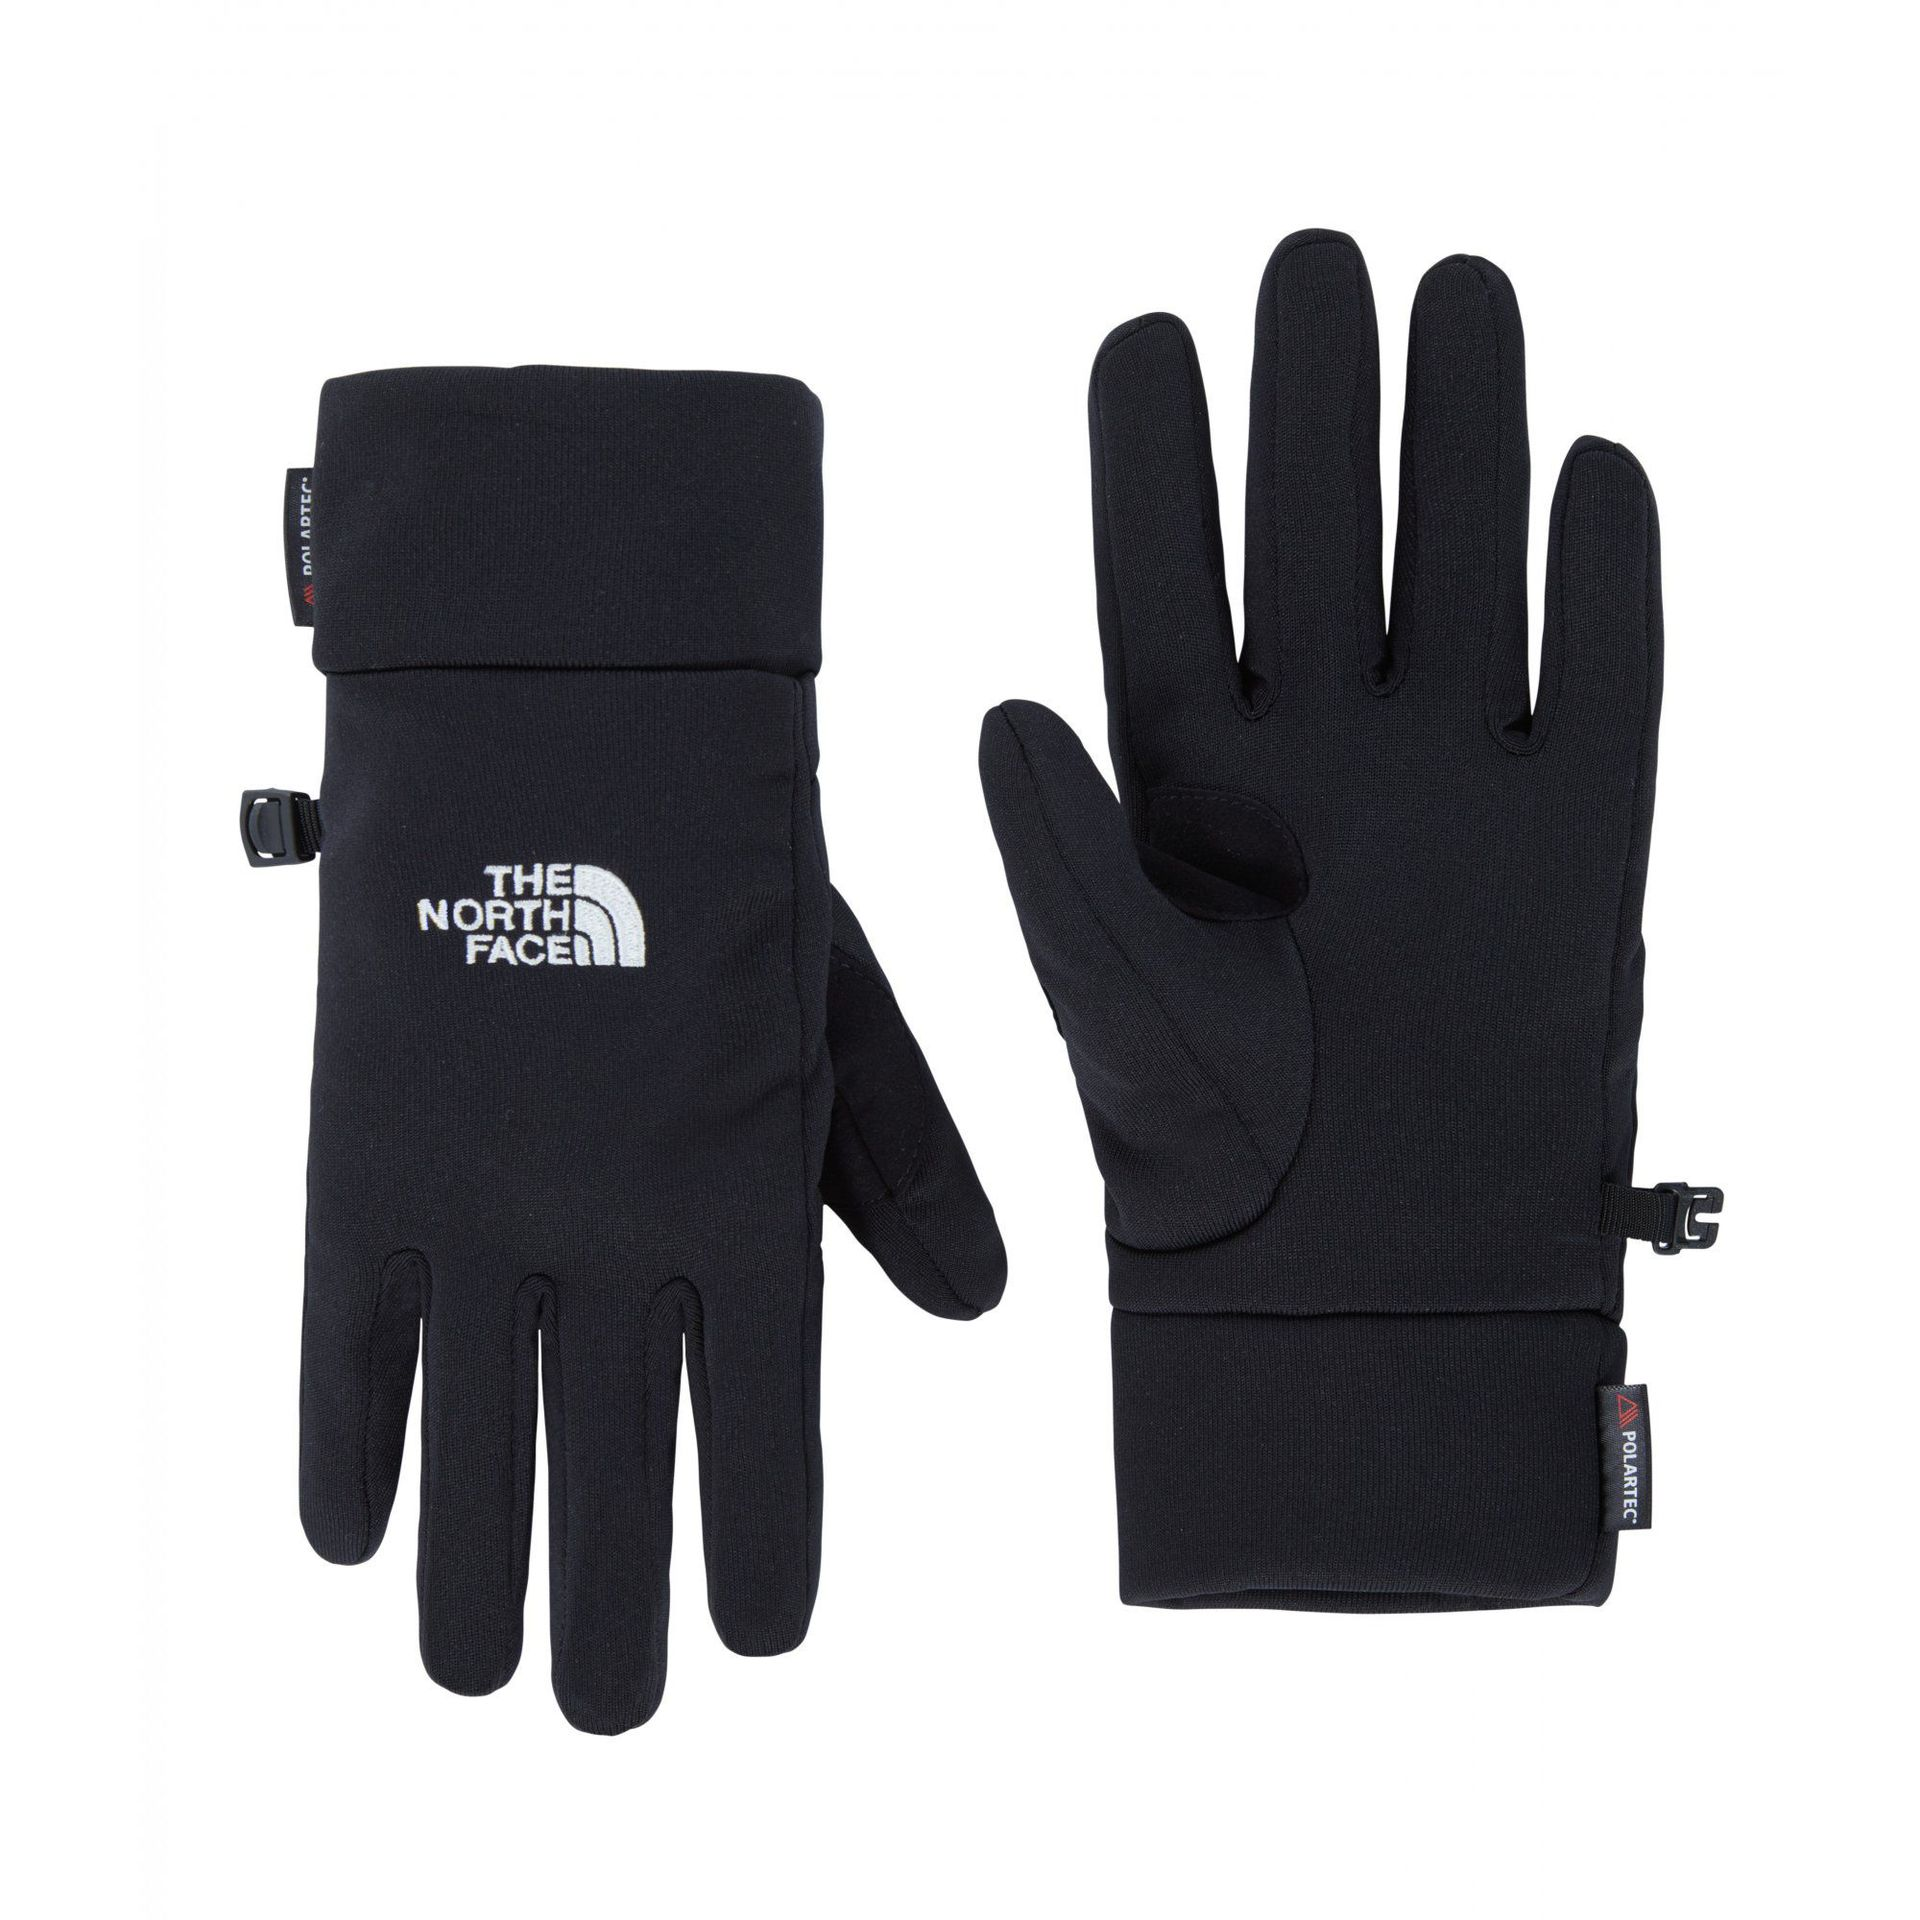 RĘKAWICE THE NORTH FACE POWERSTRETCH TNF BLACK